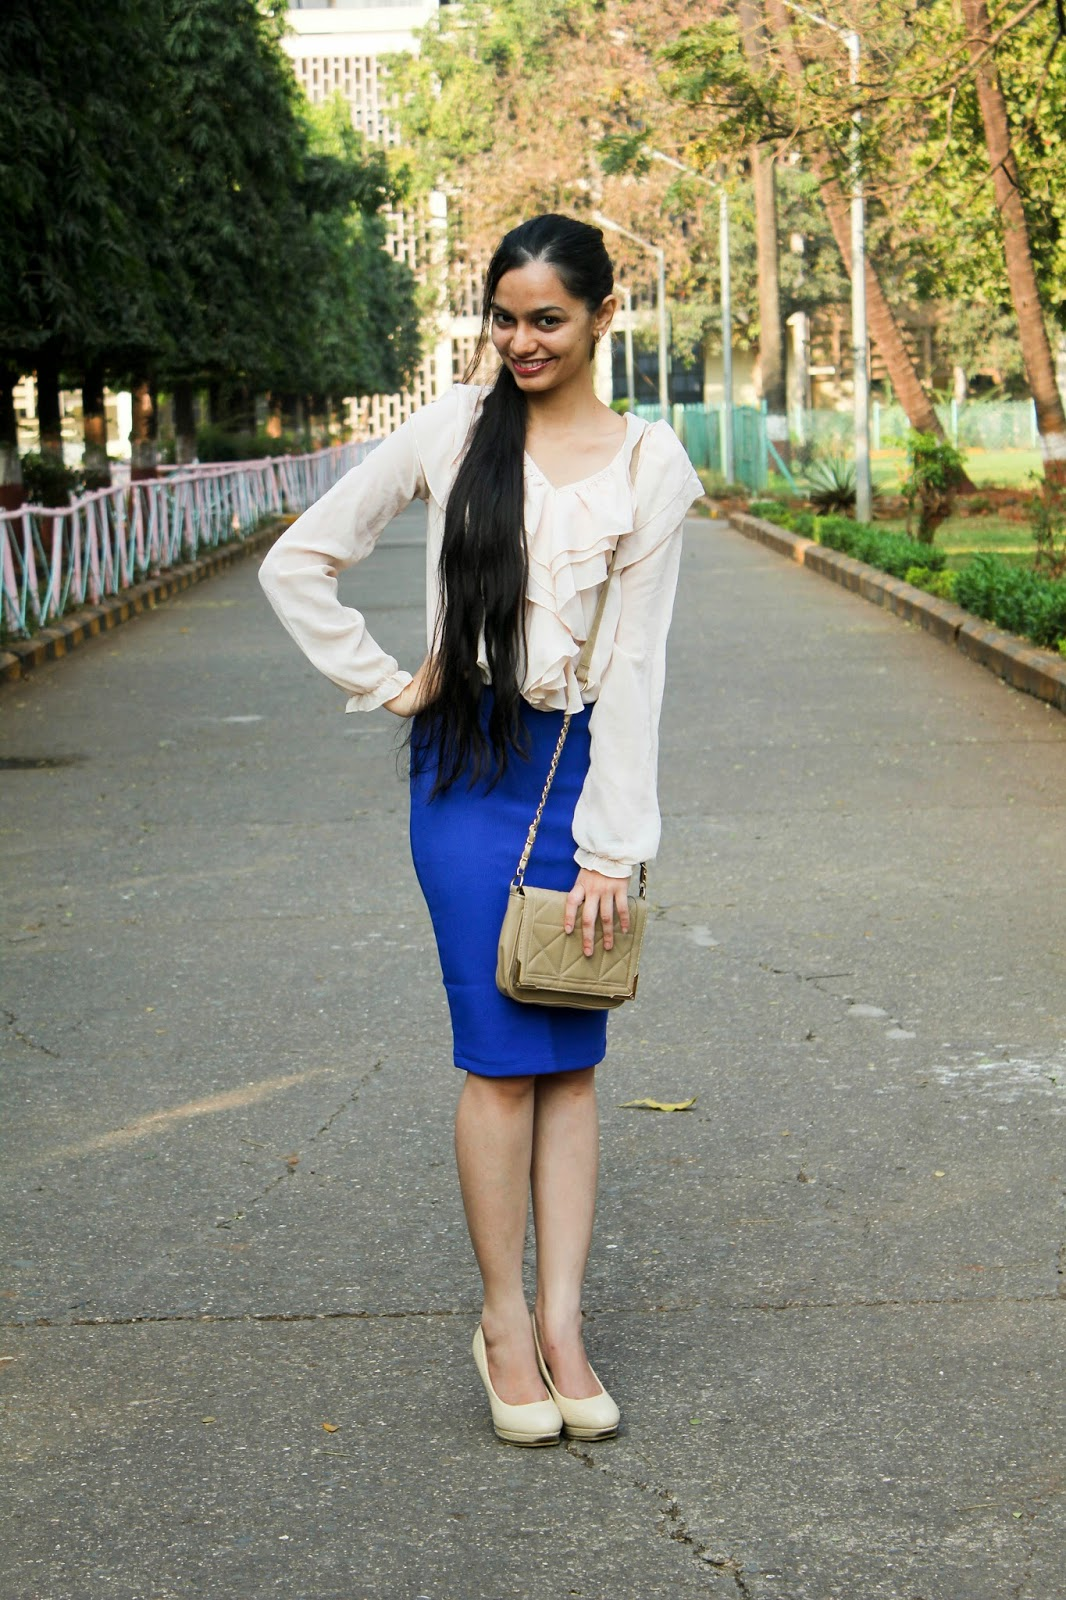 mumbai streetstyle, what to wear to work, officewear, workwear, how to wear a pencil skirt, how to wear a skirt to office, forever 21, what to buy in mumbai, mumbai streetstyle